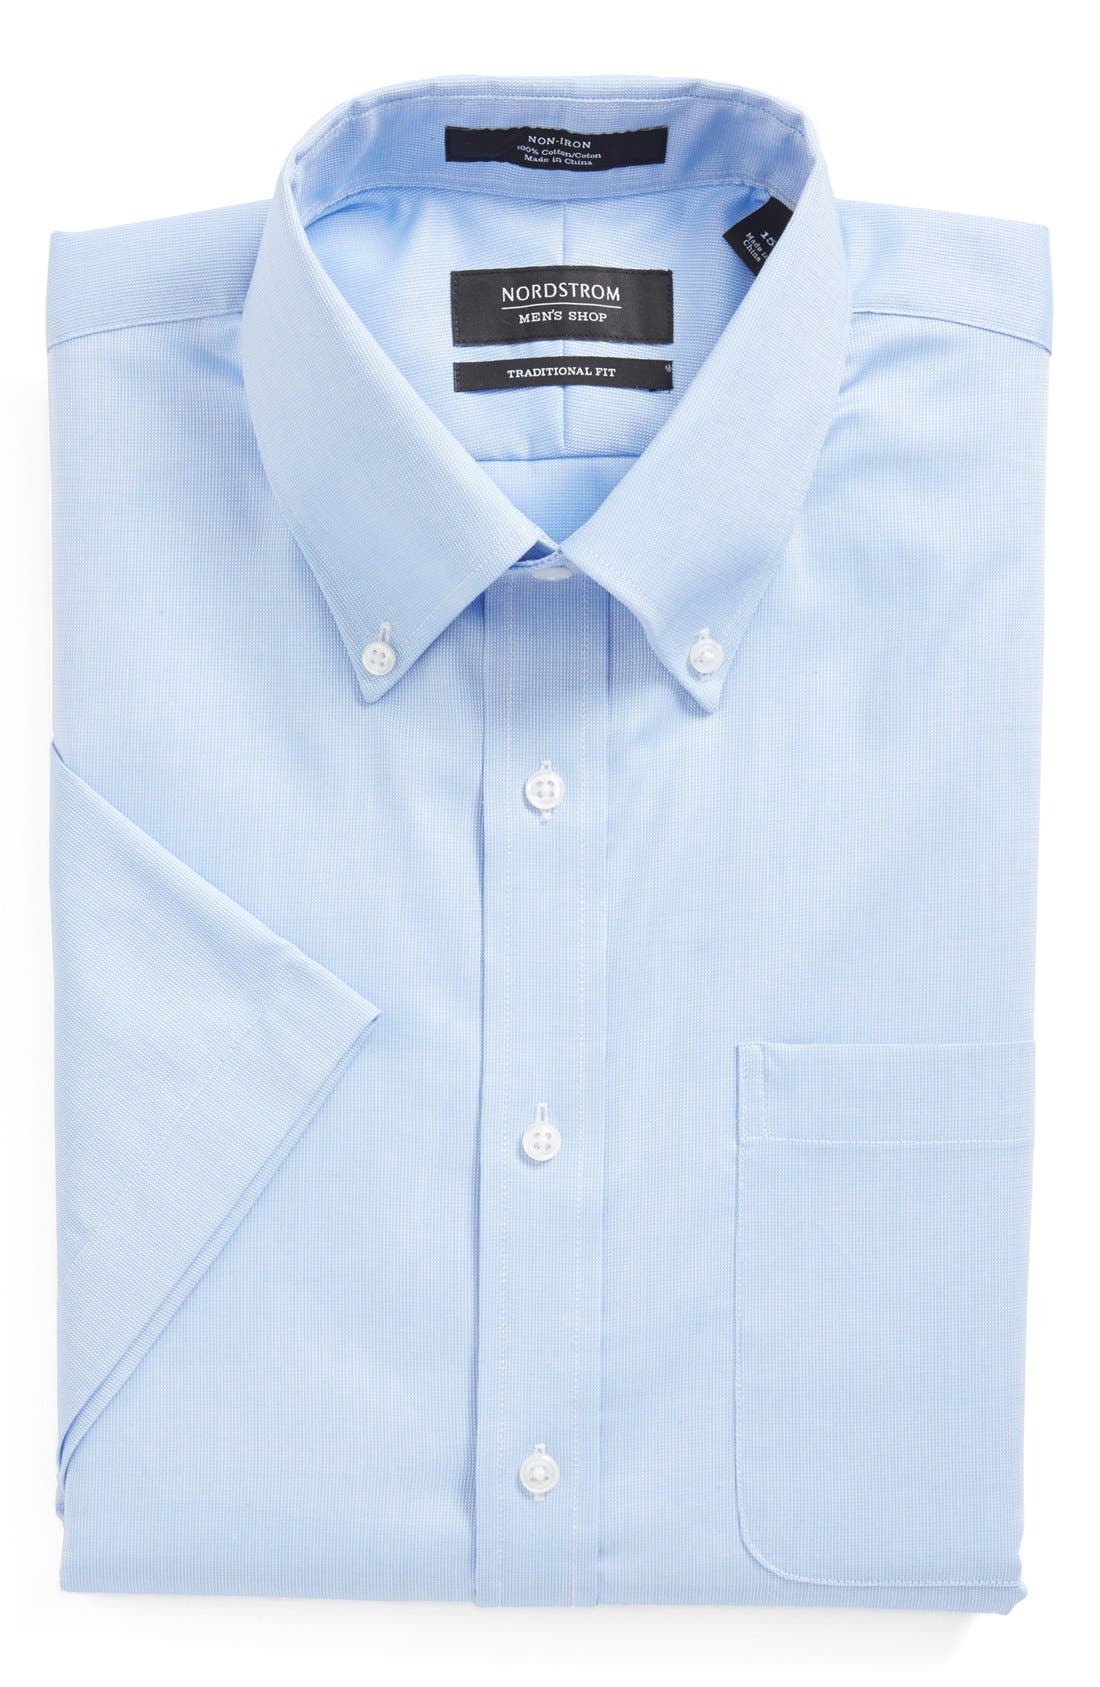 Alternate Image 1 Selected - Nordstrom Men's Shop Traditional Fit Non-Iron Short Sleeve Dress Shirt (Online Only)